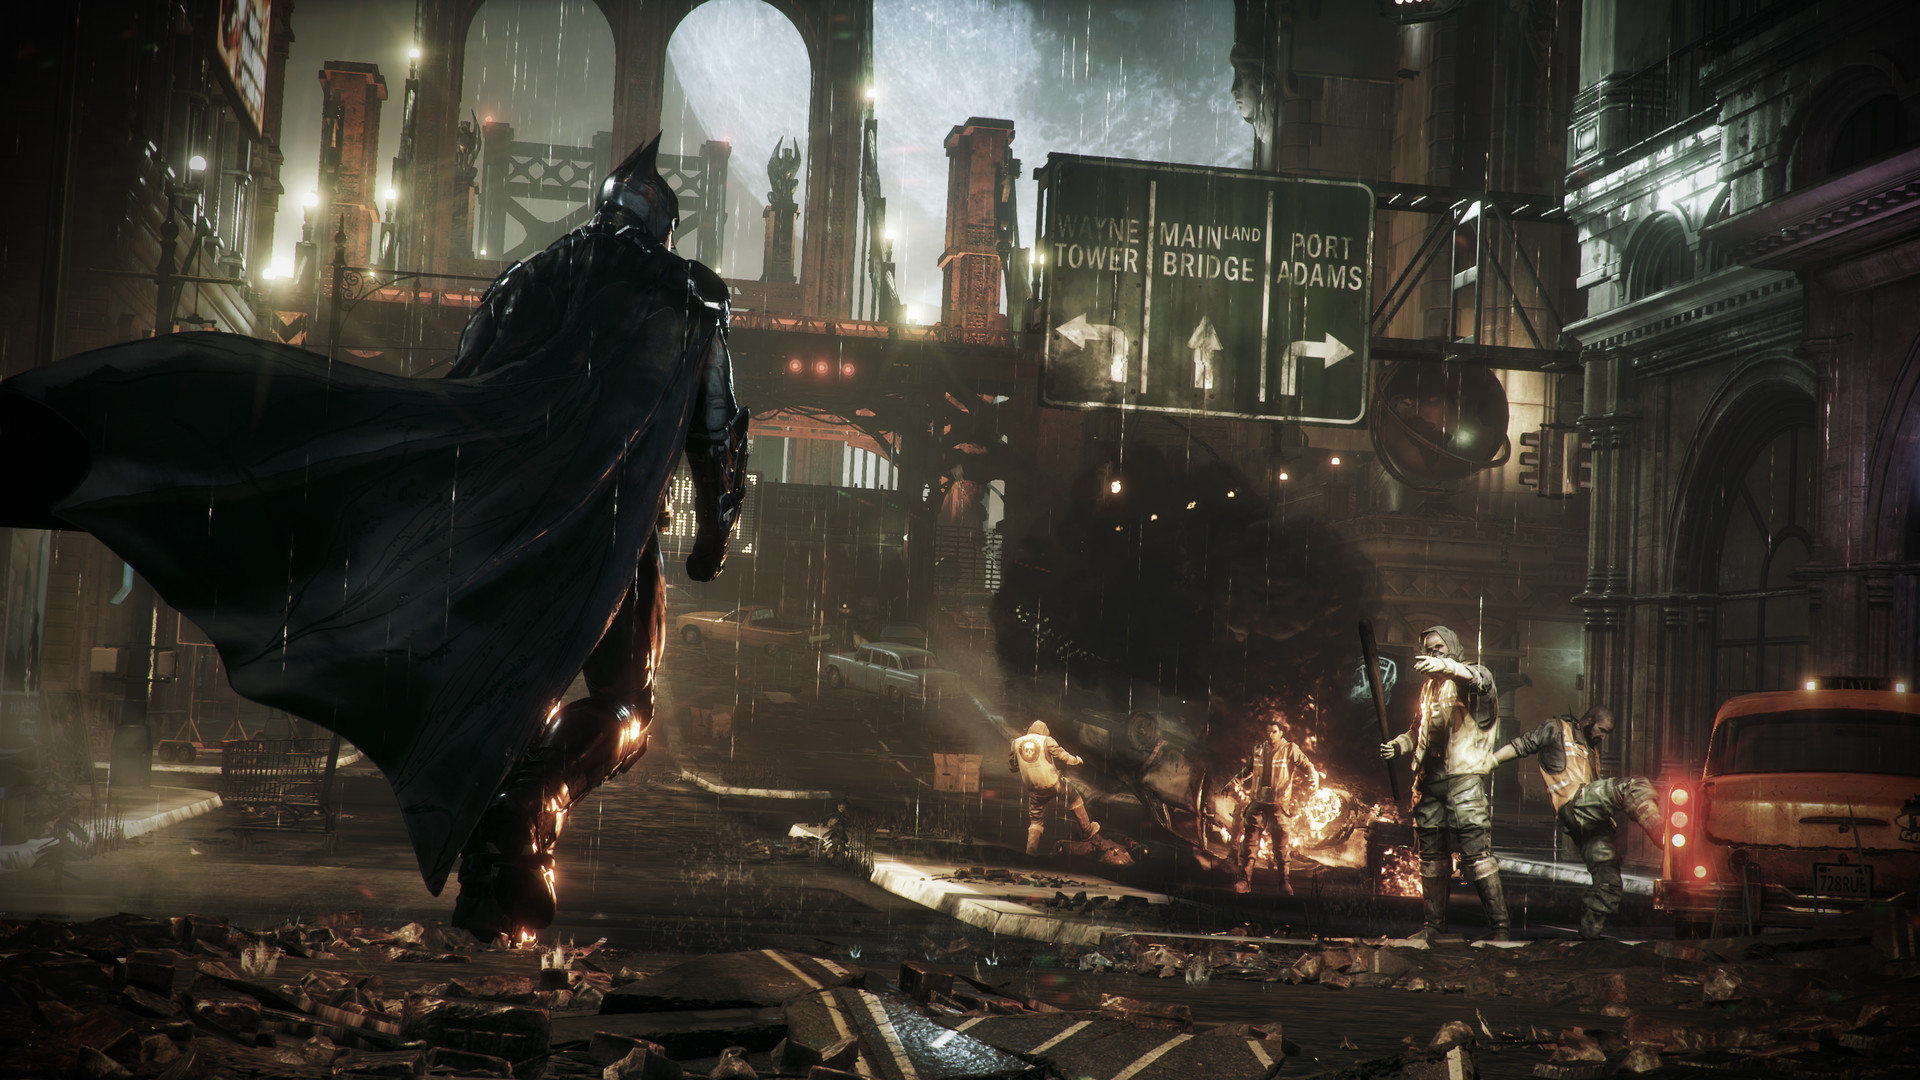 Batman: Arkham Knight recommended configuration but Warner Bros. suspends PC sales